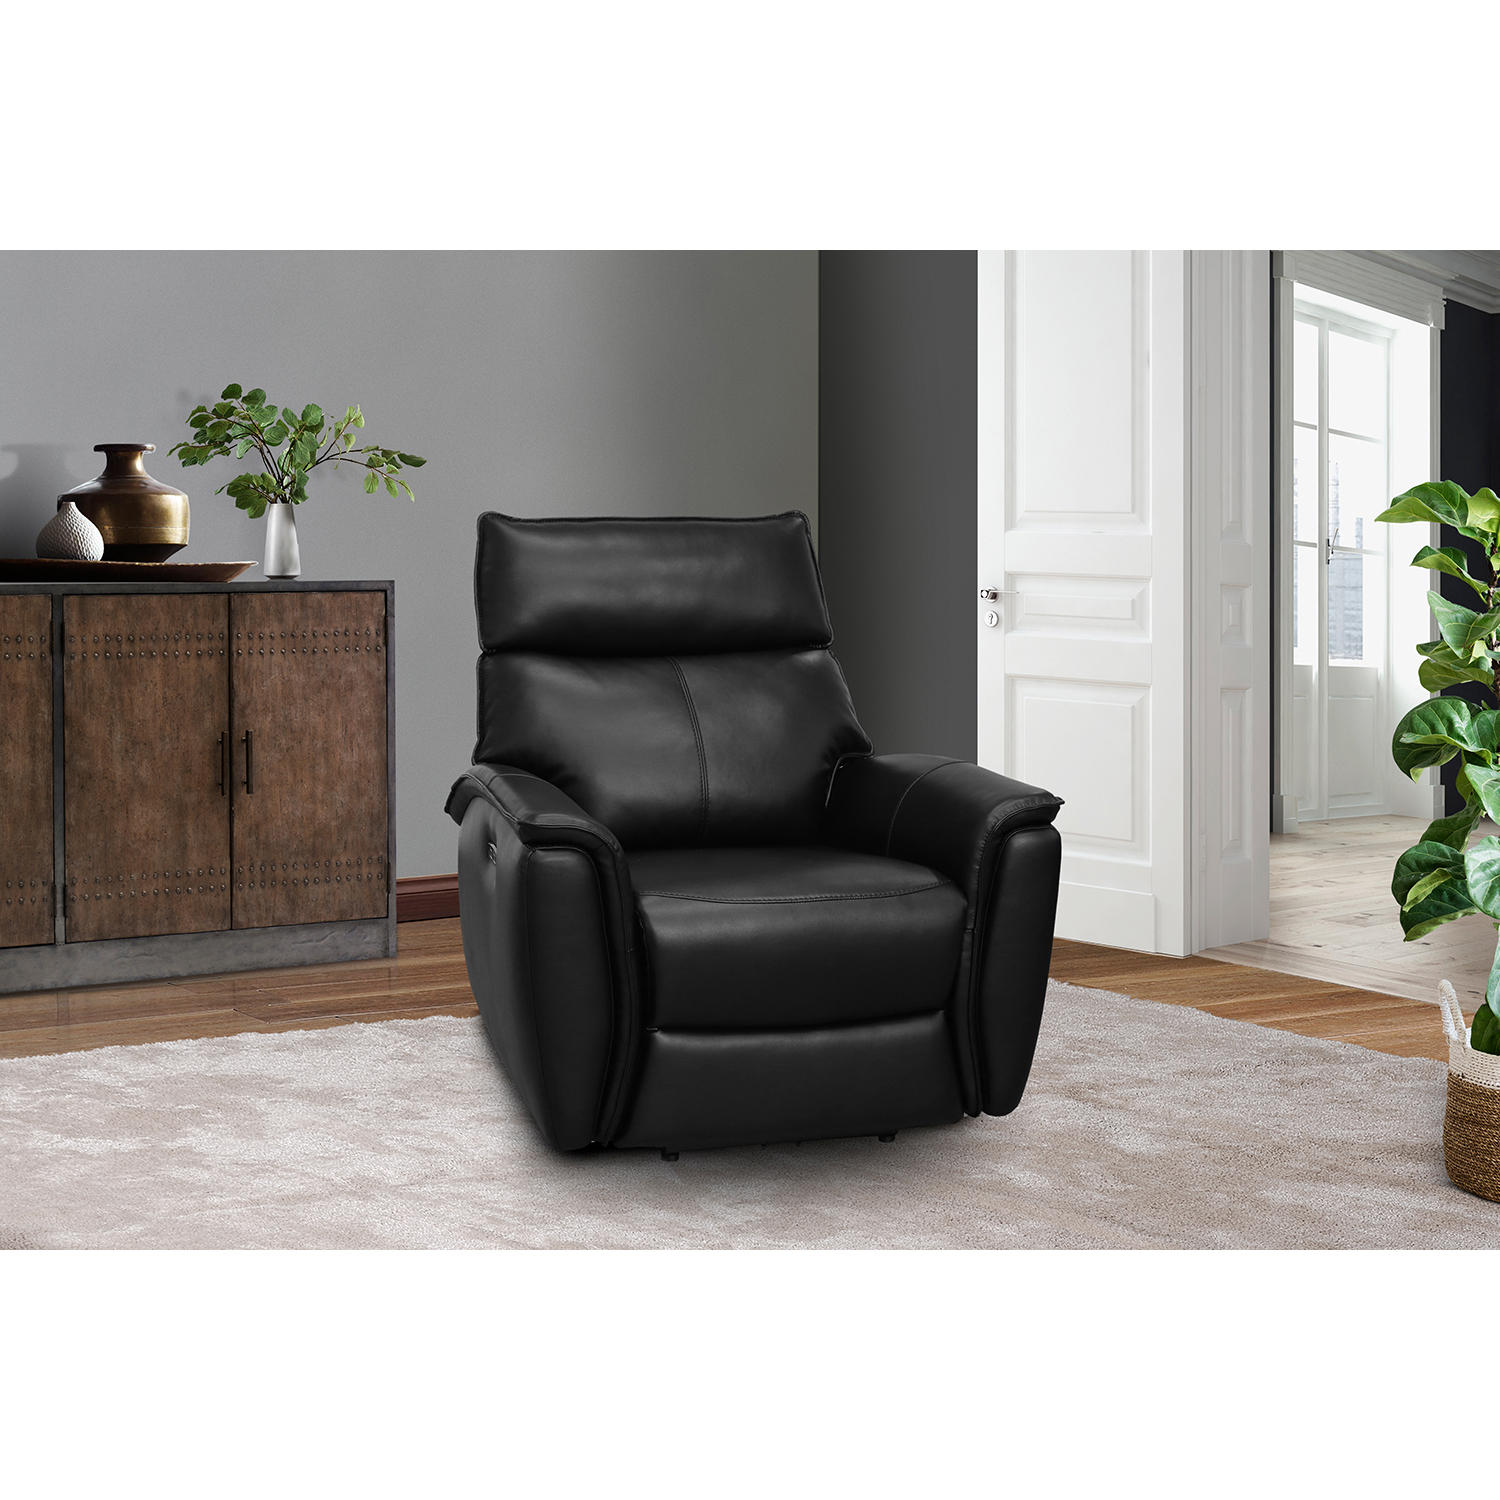 Ethan Power Recliner with Power Adjustable Headrest